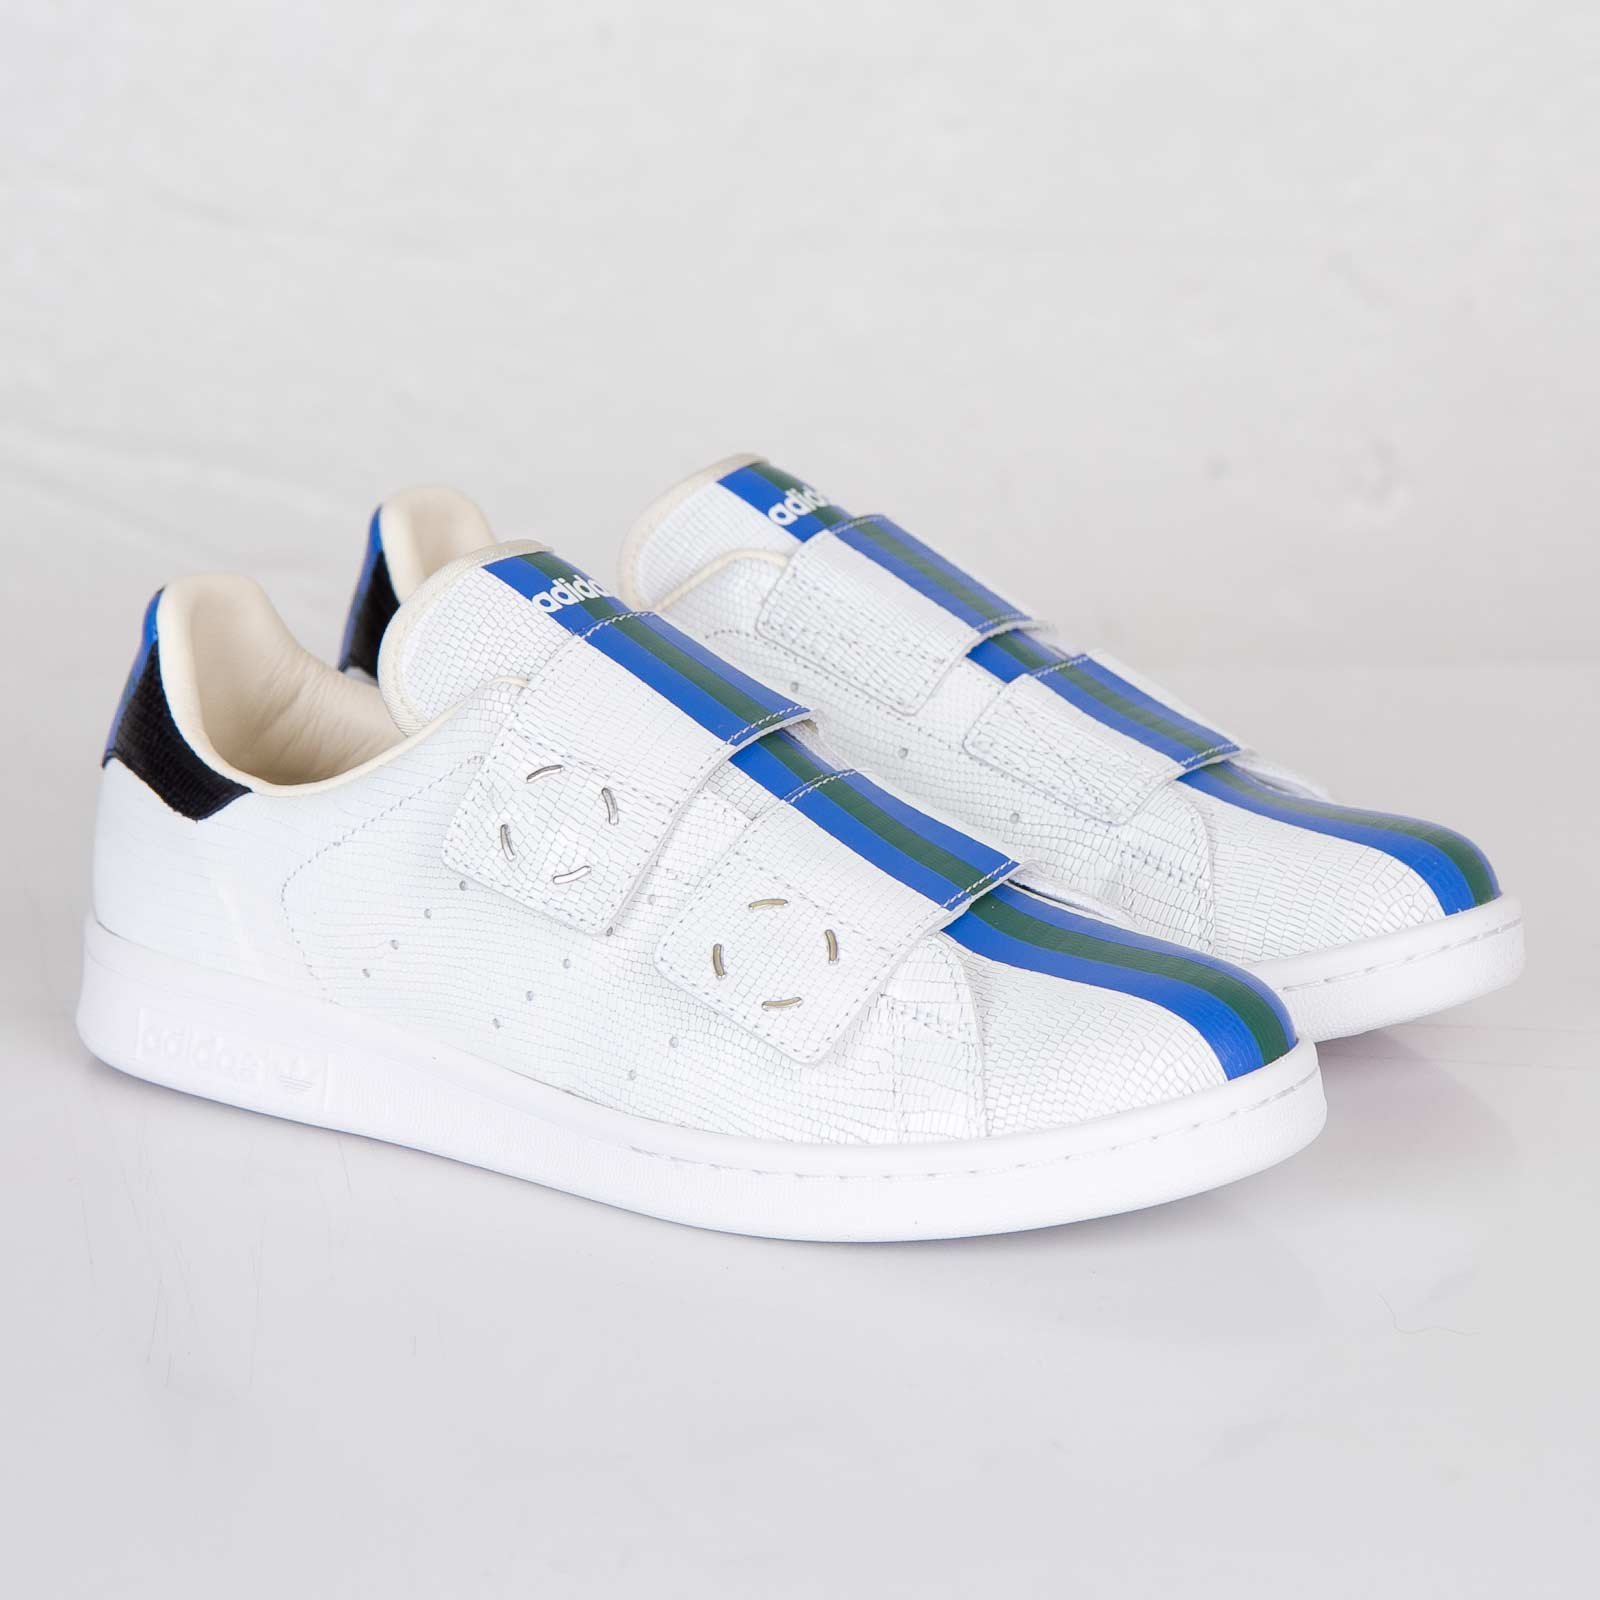 promo code a4572 22747 adidas Stan Smith RS - M20547 - Sneakersnstuff | sneakers ...